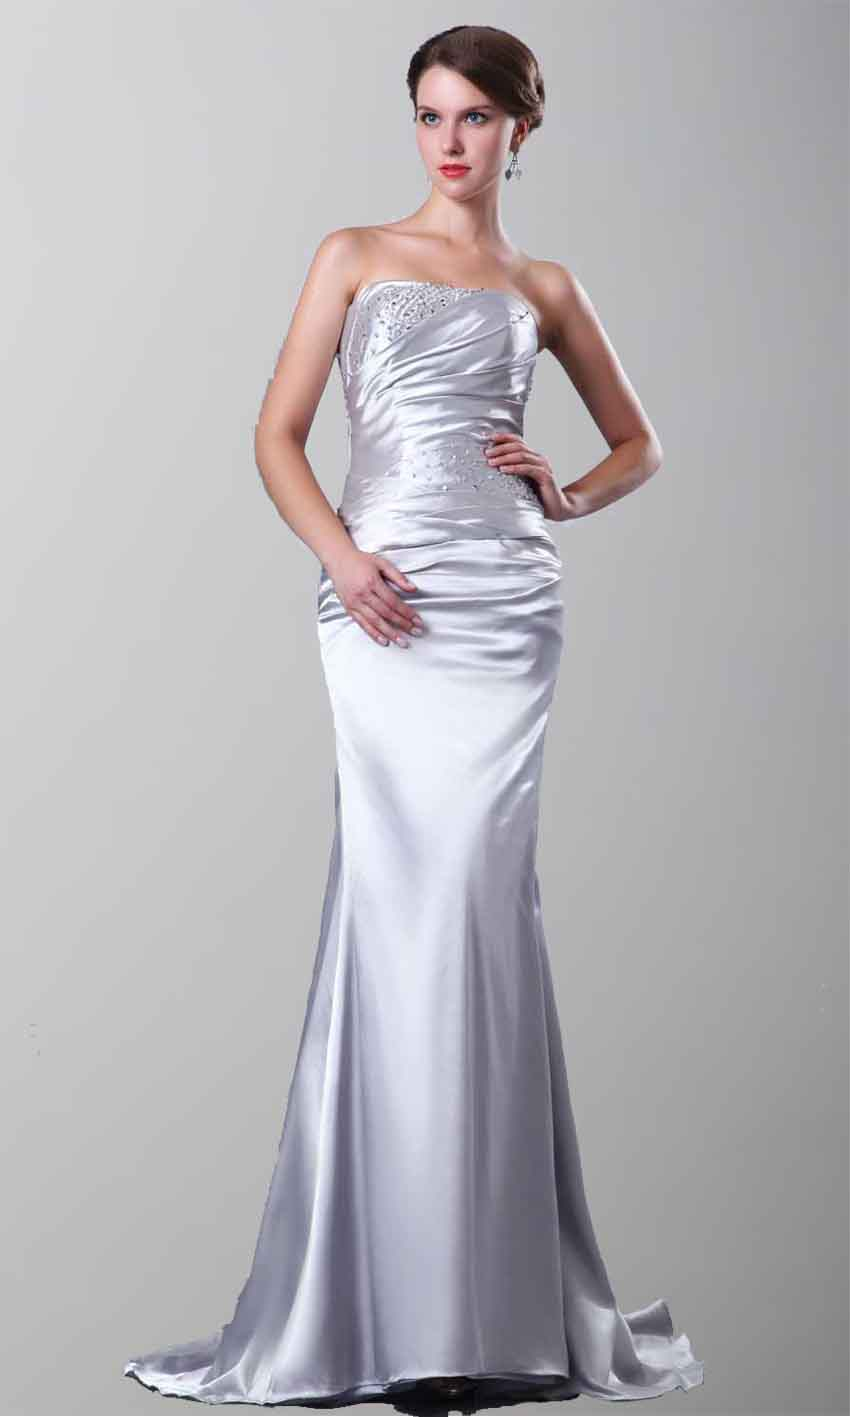 Strapless Satin Mermaid Long Grey Formal Evening Dresses KSP263 [KSP263] - £92.00 : Cheap Prom Dresses Uk, Bridesmaid Dresses, 2014 Prom & Evening Dresses, Look for cheap elegant prom dresses 2014, cocktail gowns, or dresses for special occasions? kissprom.co.uk offers various bridesmaid dresses, evening dress, free shipping to UK etc.